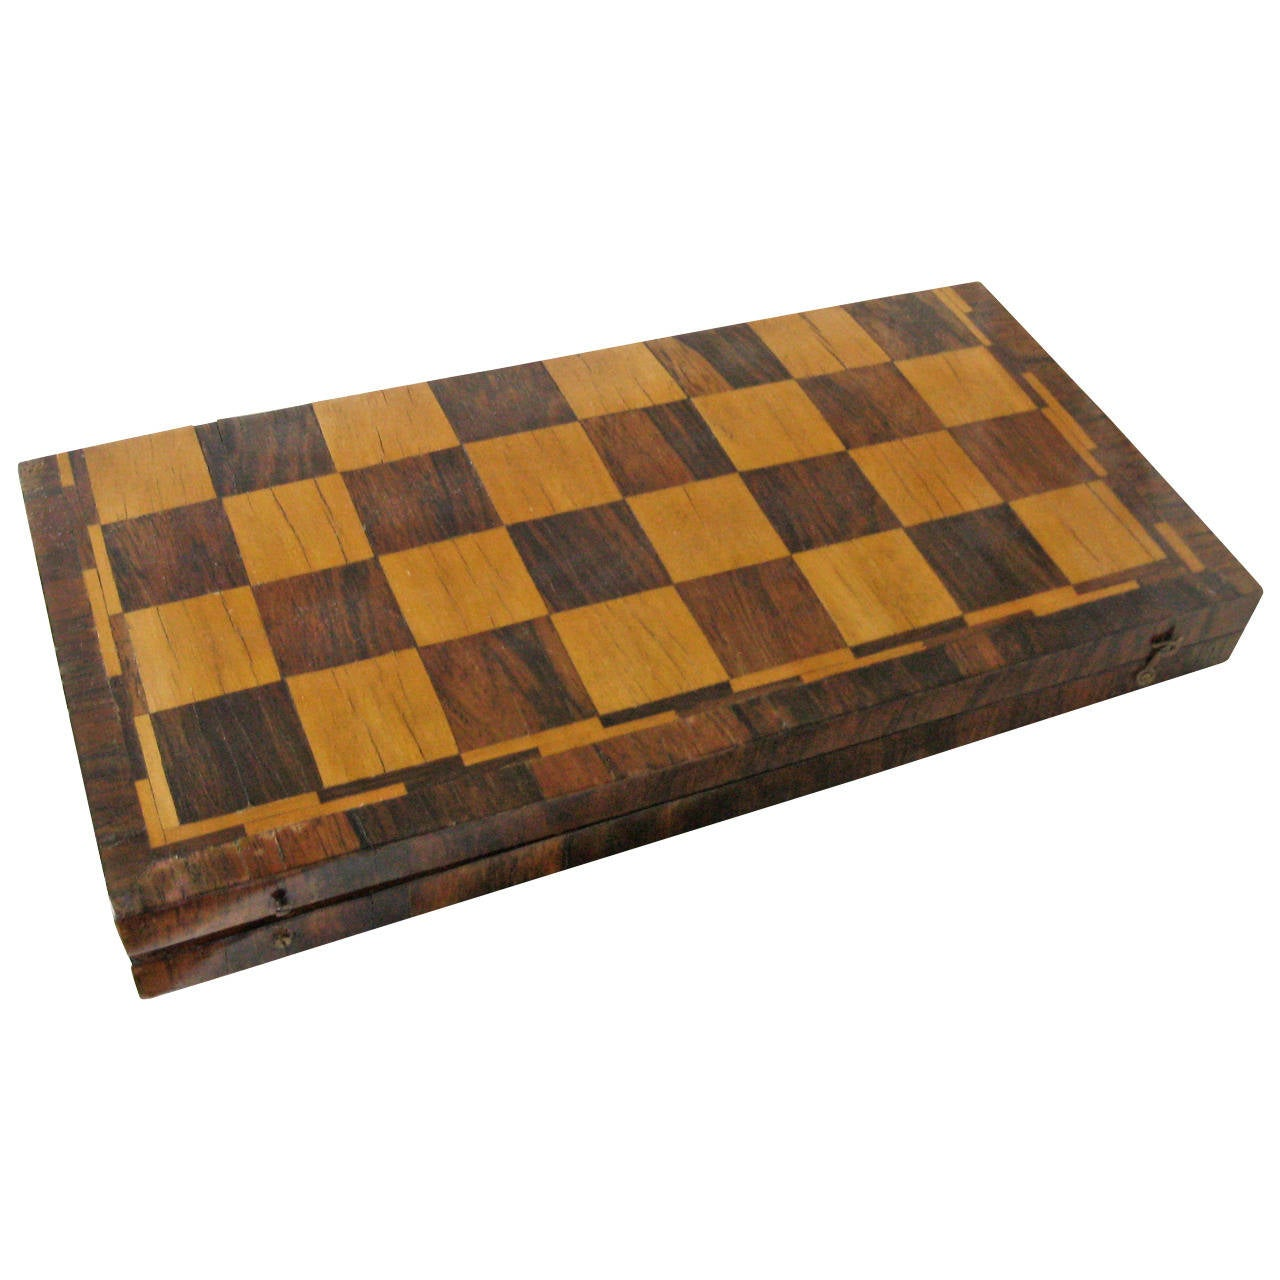 Chess Board Sale Chess Board For Sale At 1stdibs